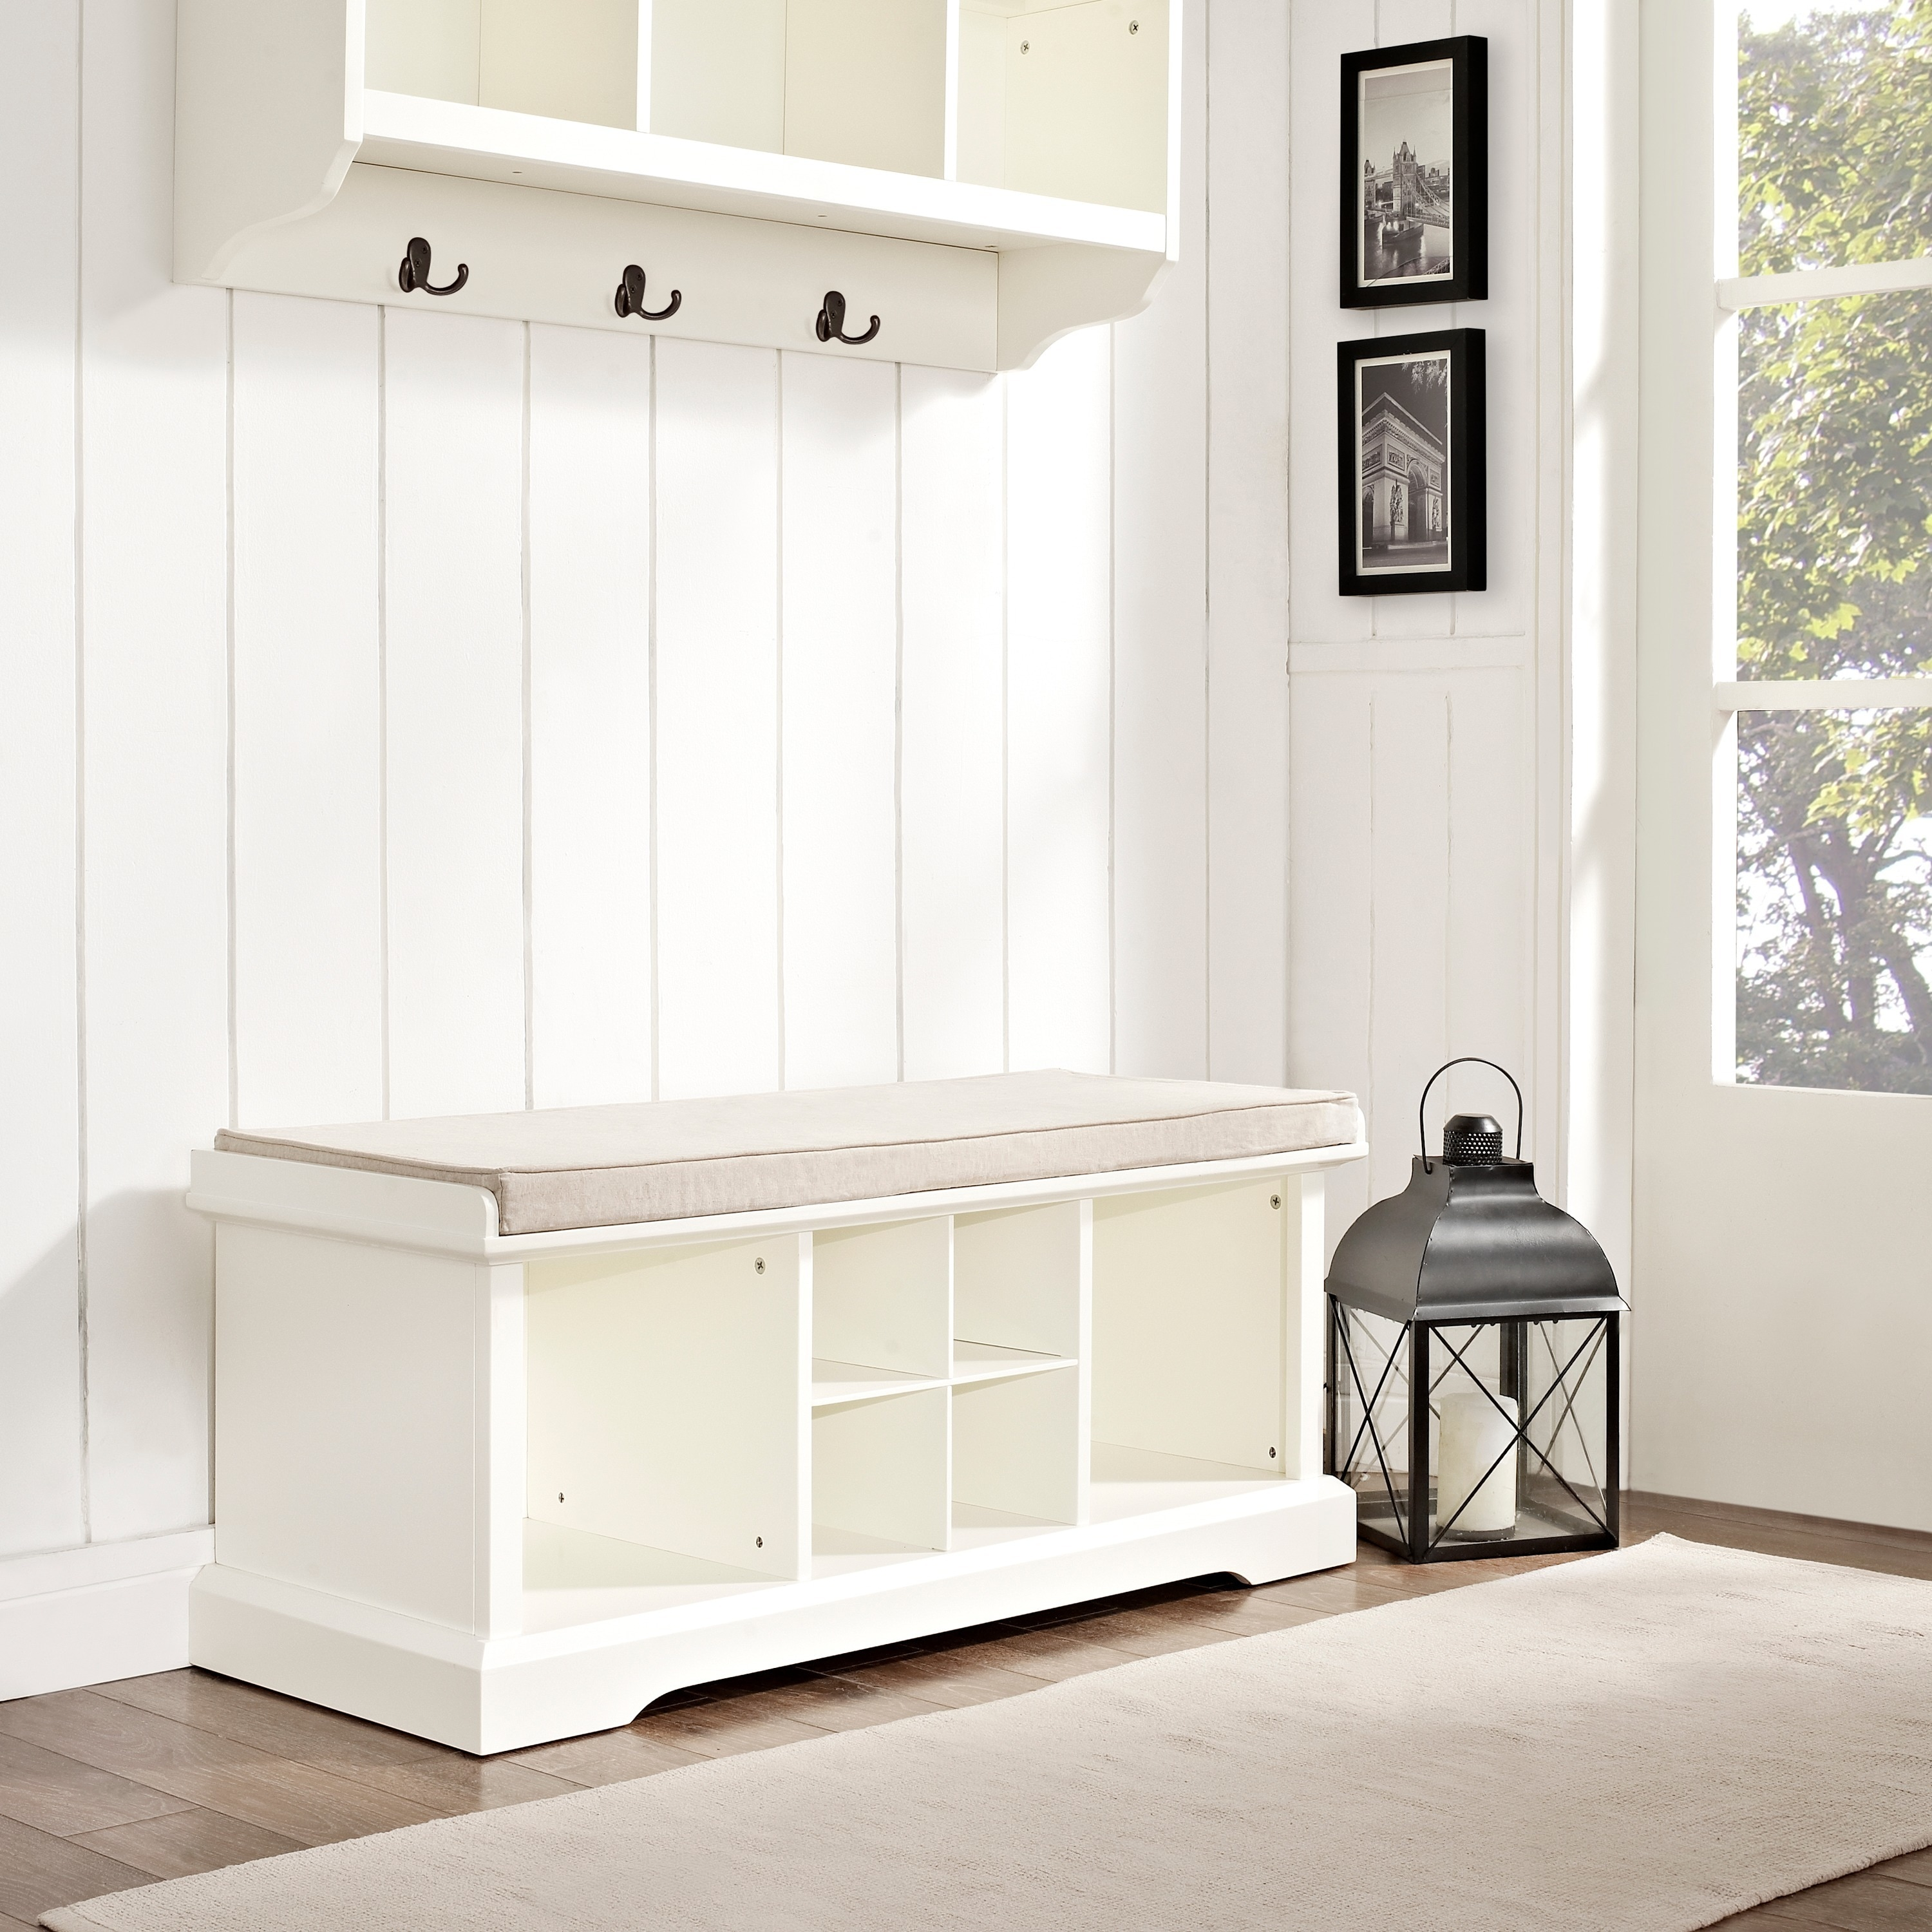 Shop Brennan White Wood Entryway Storage Bench   Free Shipping Today    Overstock.com   15974705